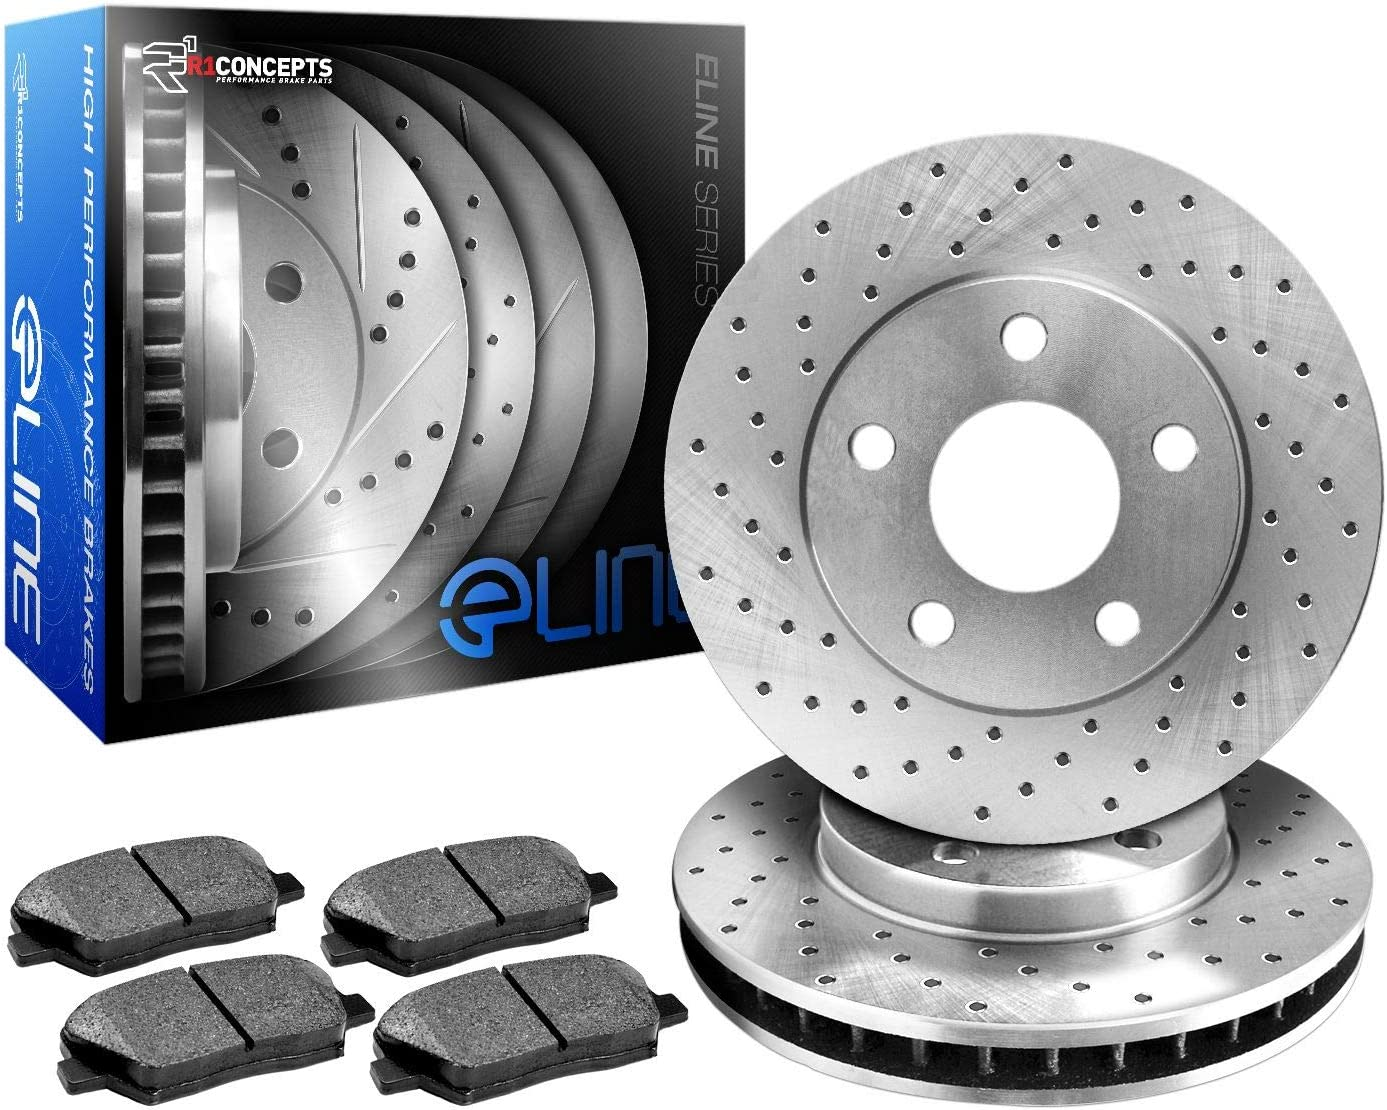 Front R1 Concepts KEX11745 Eline Series Cross-Drilled Rotors And Ceramic Pads Kit